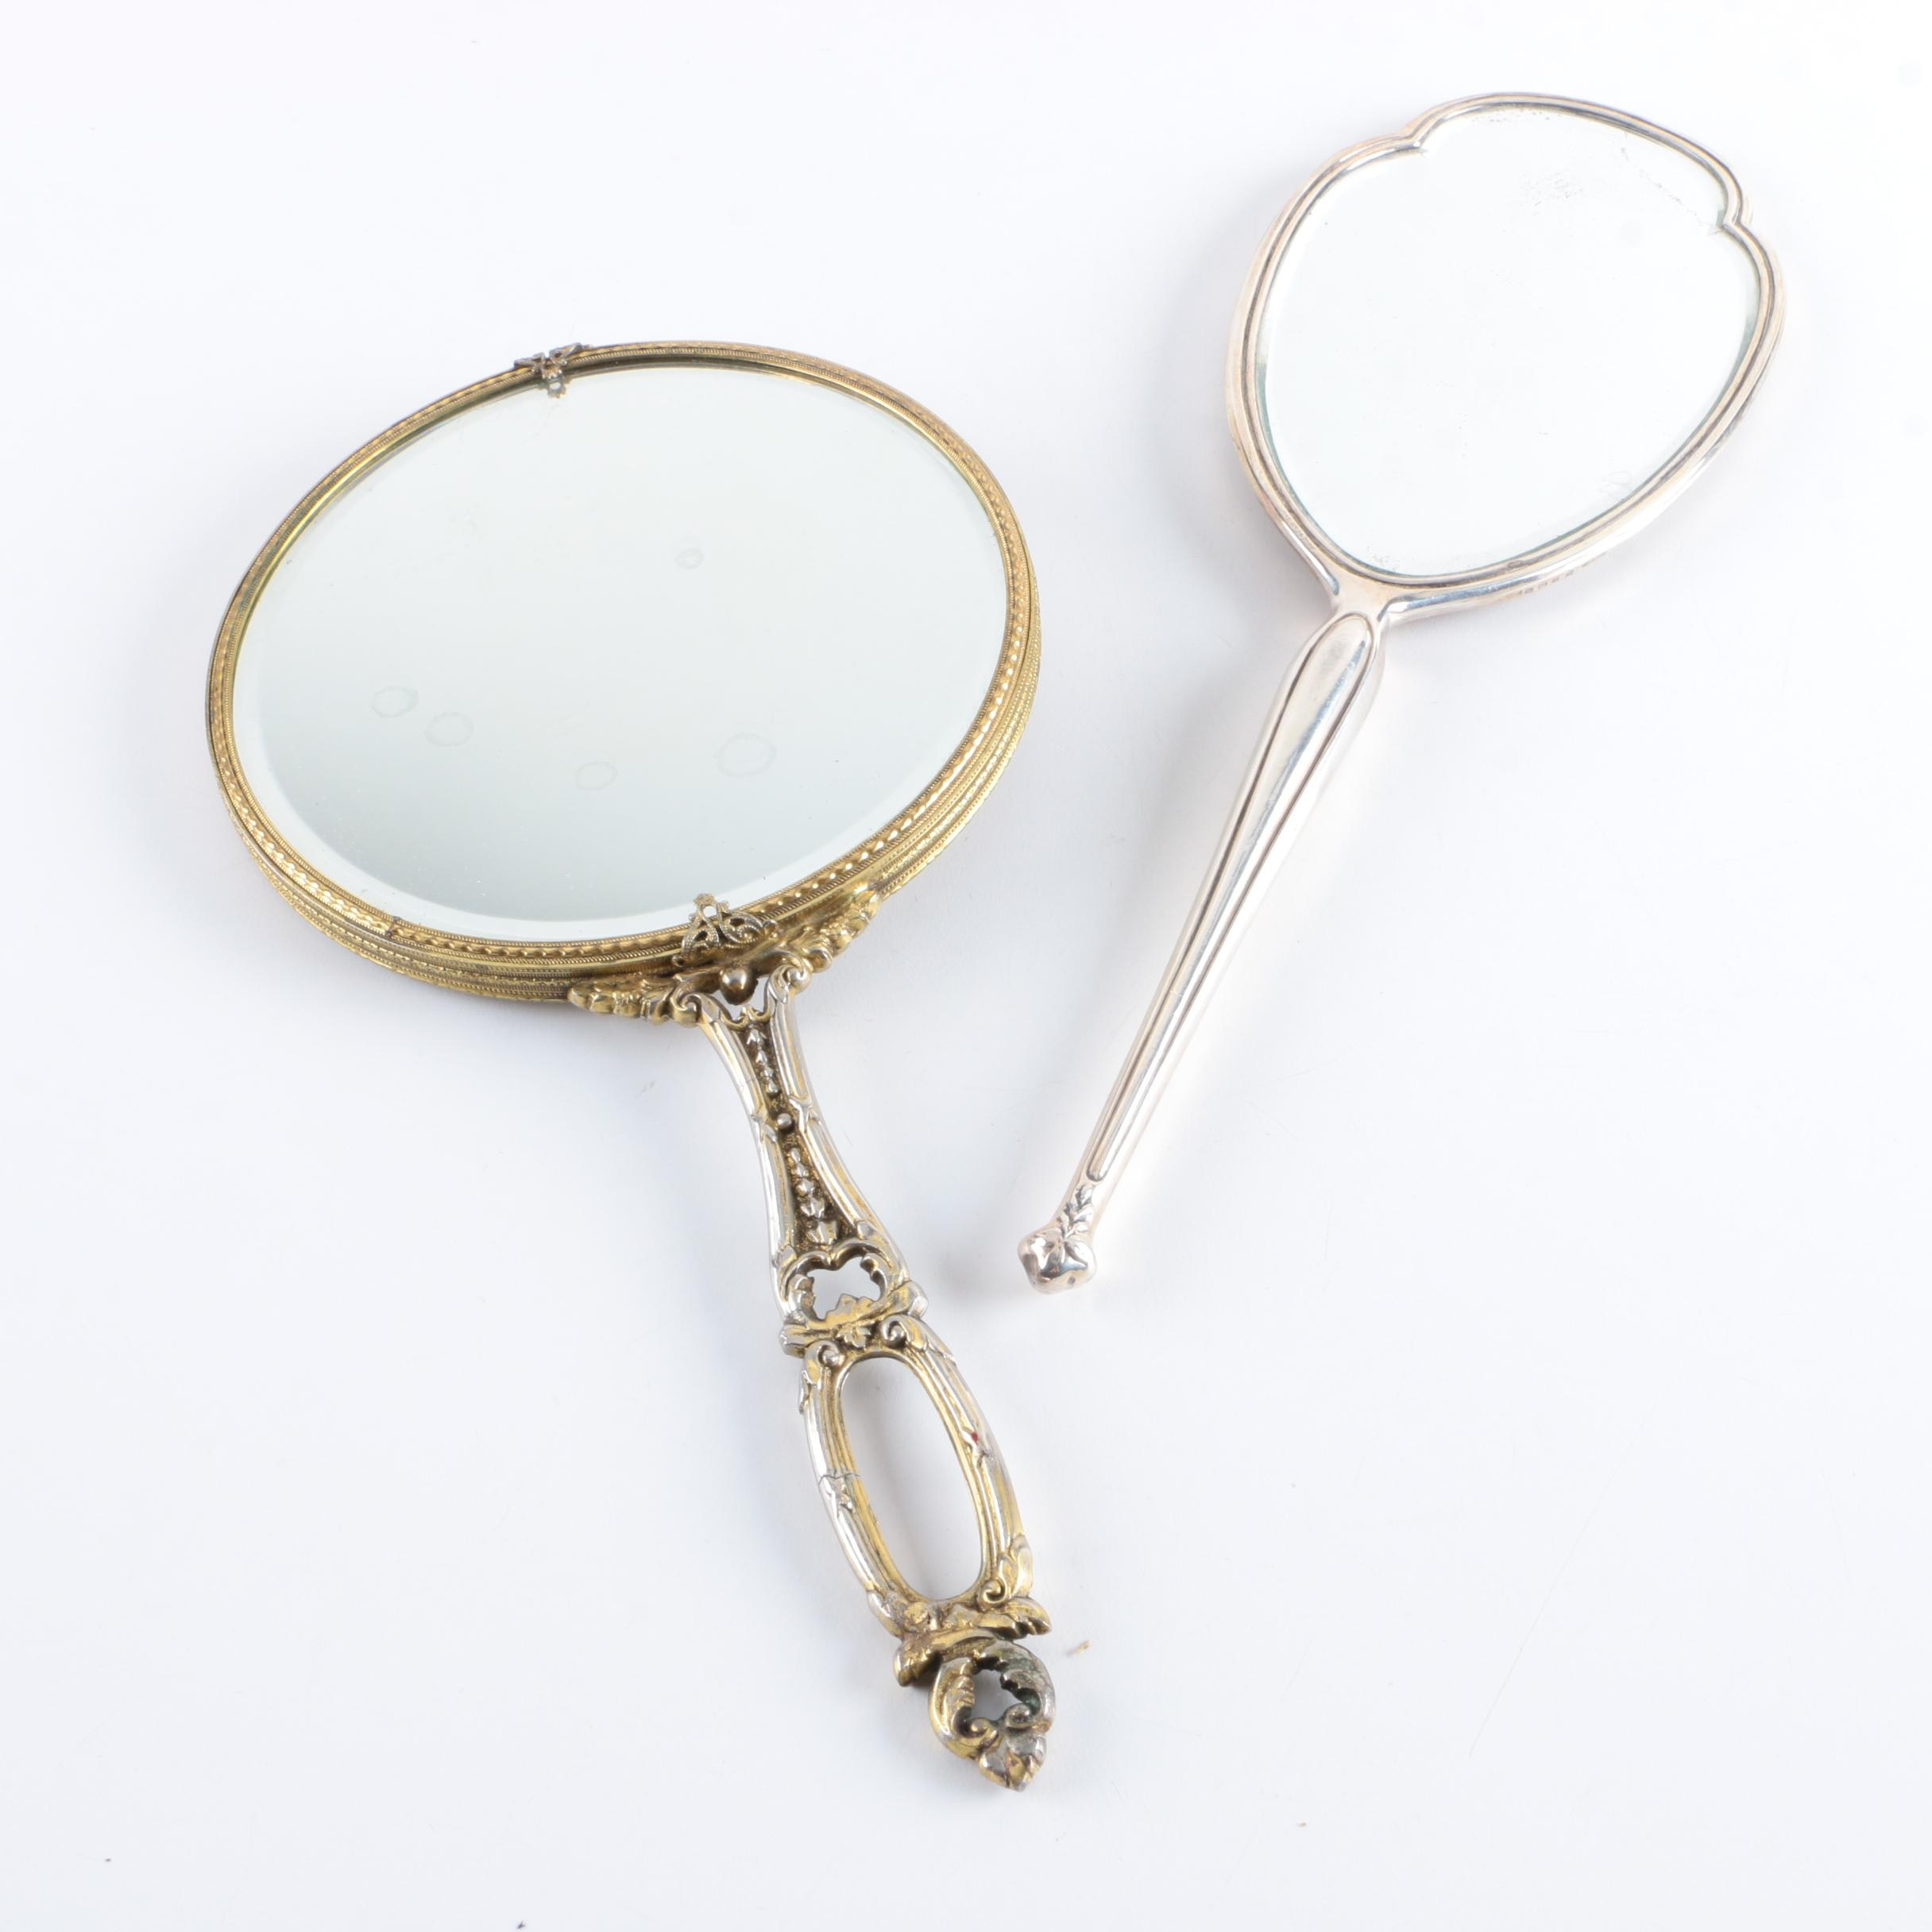 1936 Charles S Green & Co. Sterling Silver Hand Mirror and More